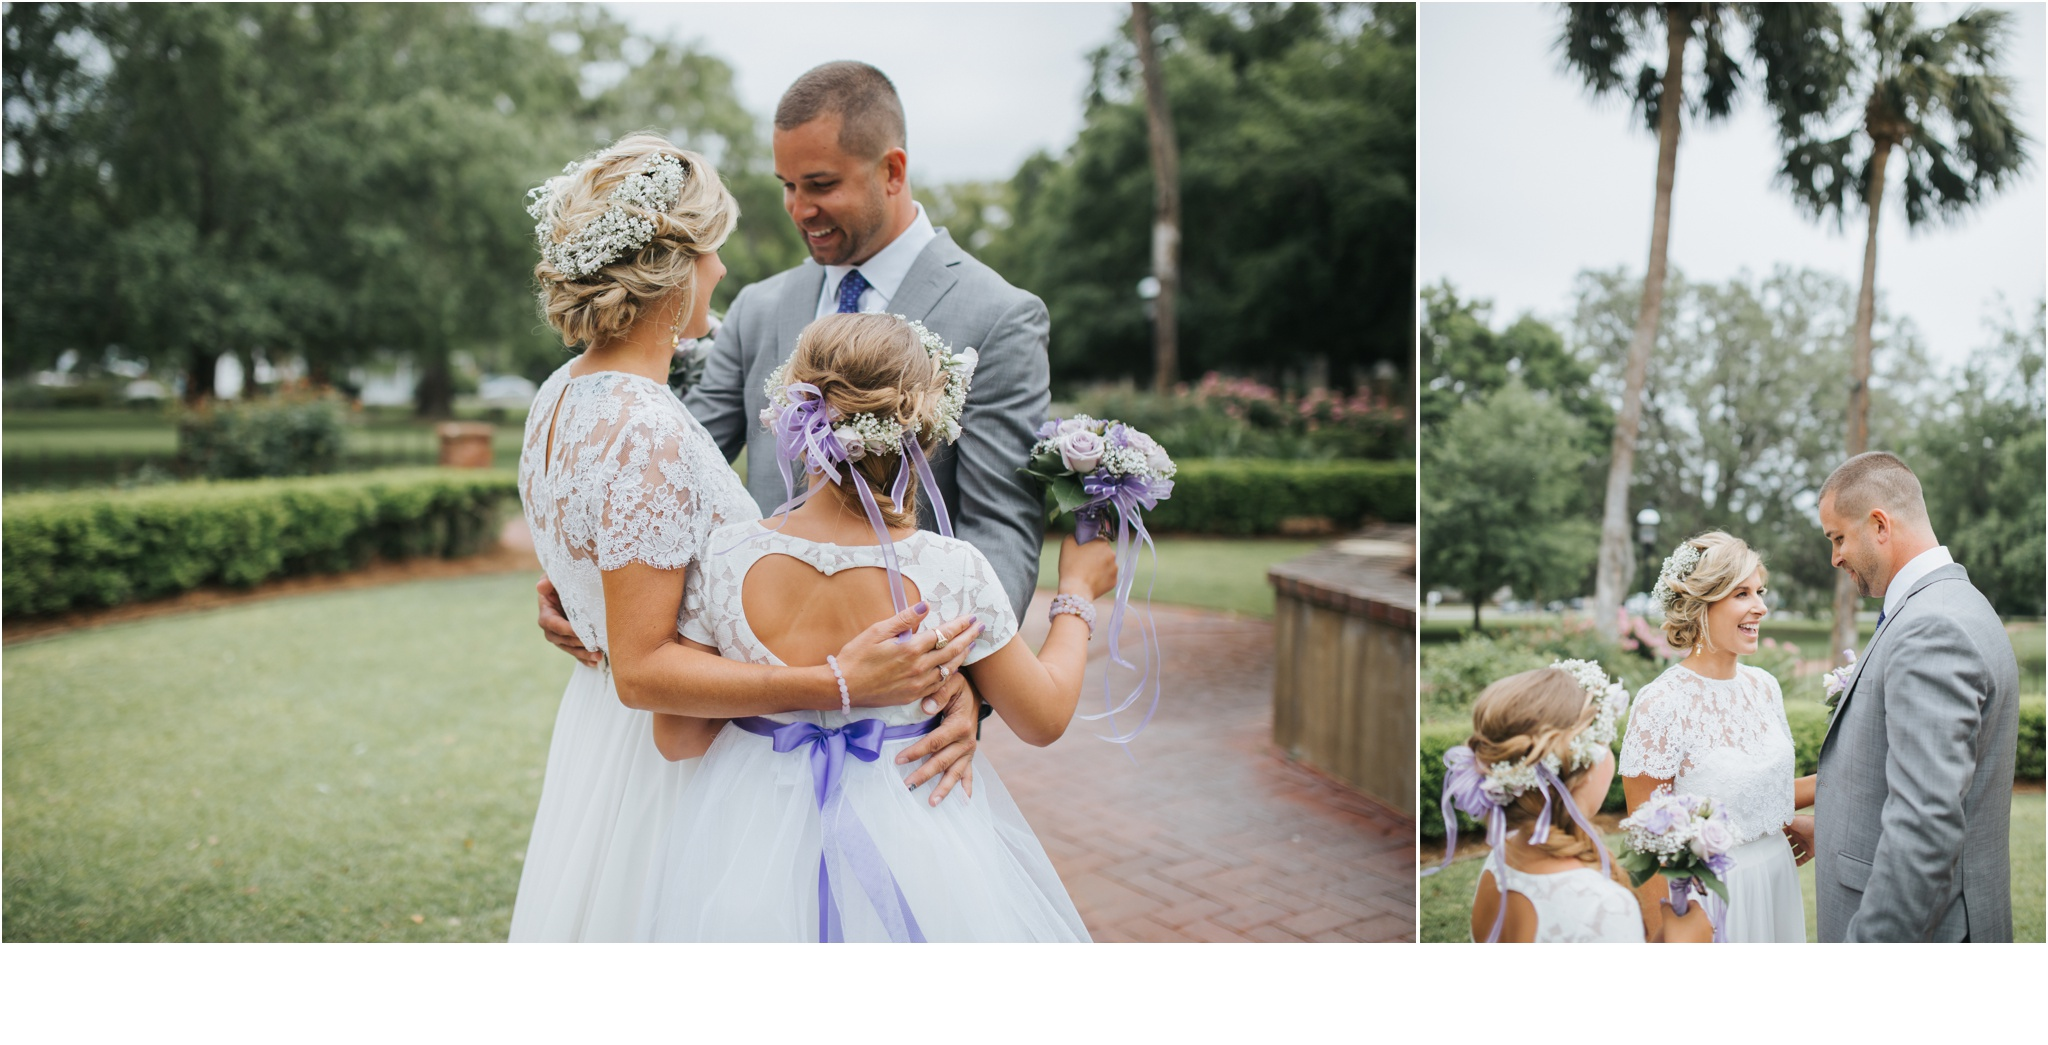 Rainey_Gregg_Photography_St._Simons_Island_Georgia_California_Wedding_Portrait_Photography_1498.jpg